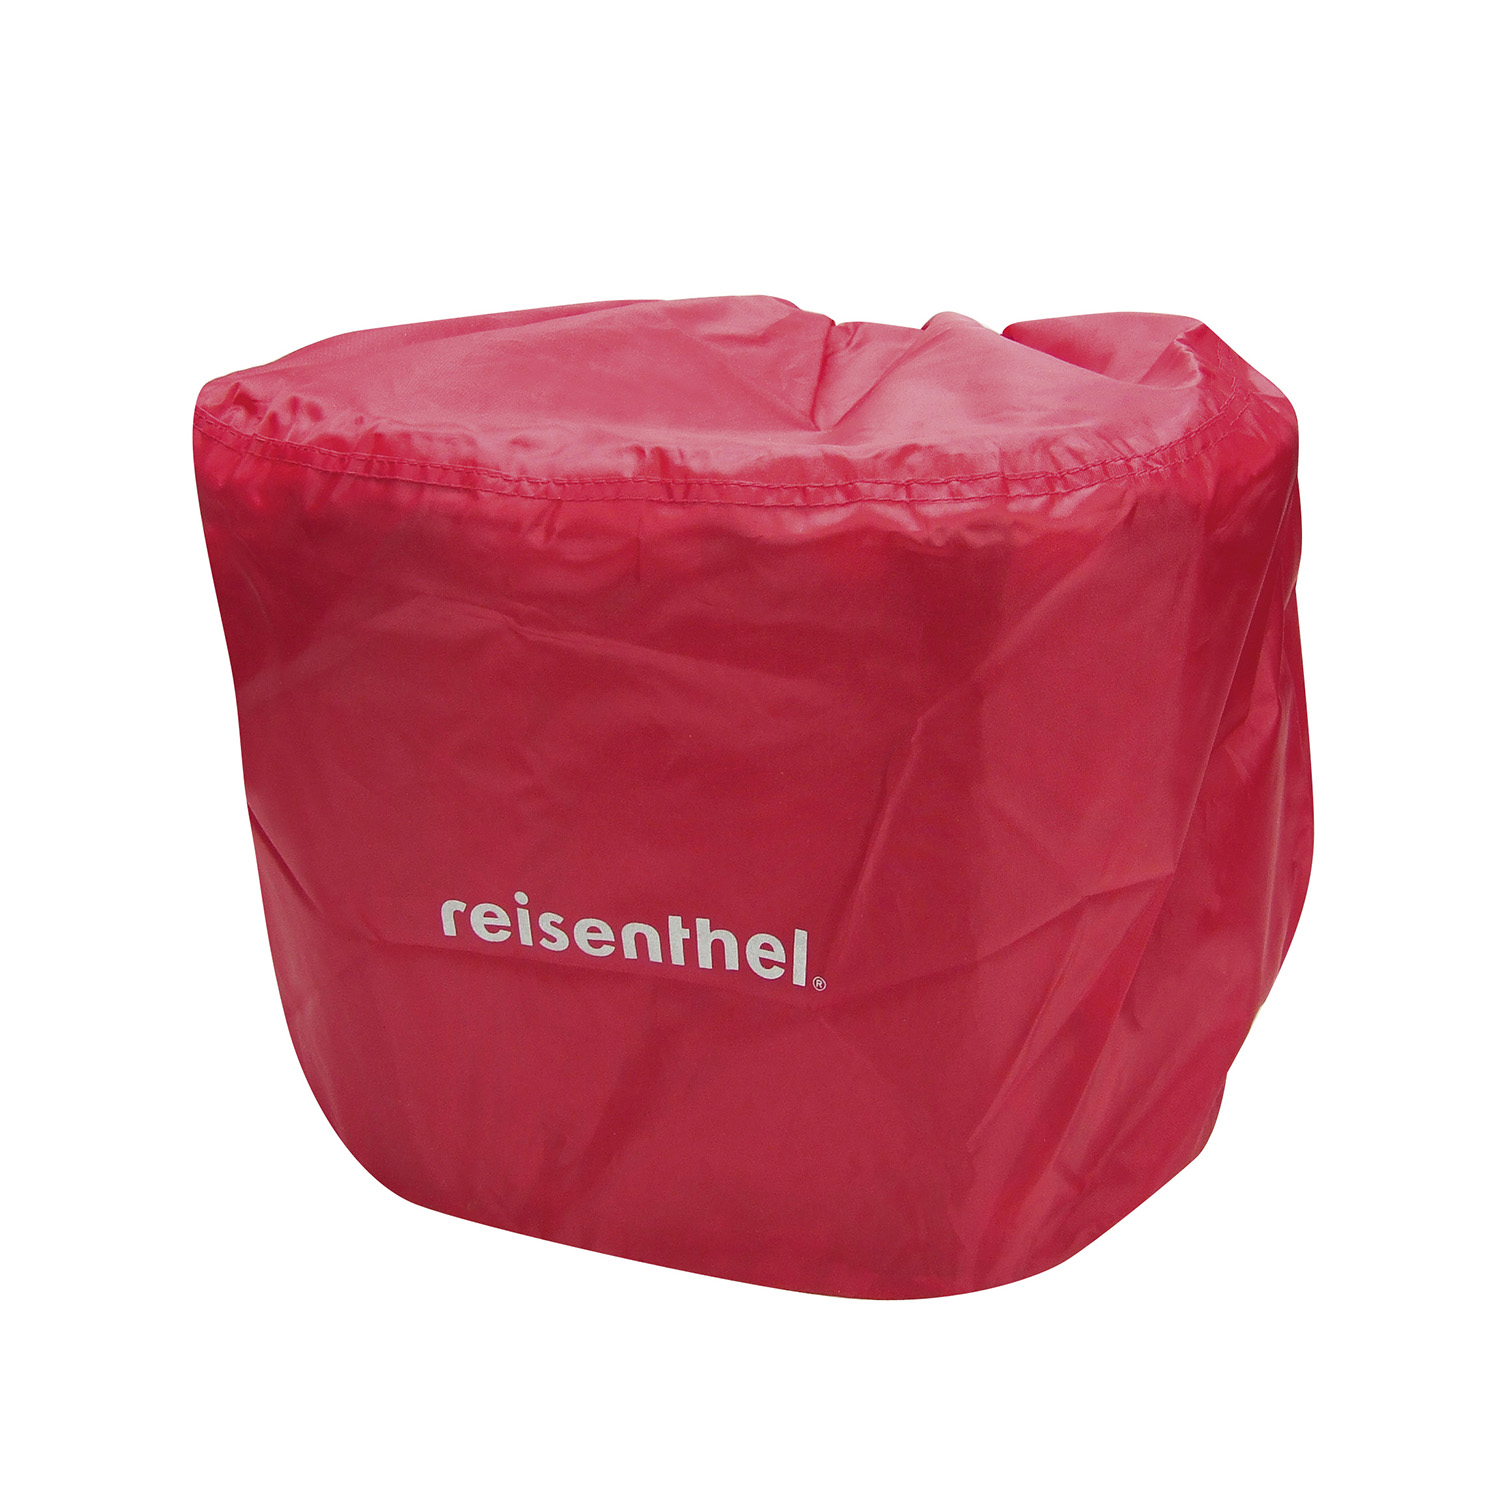 Bikebasket Raincover, red raincover with reflector for Reisenthel bikebaskets